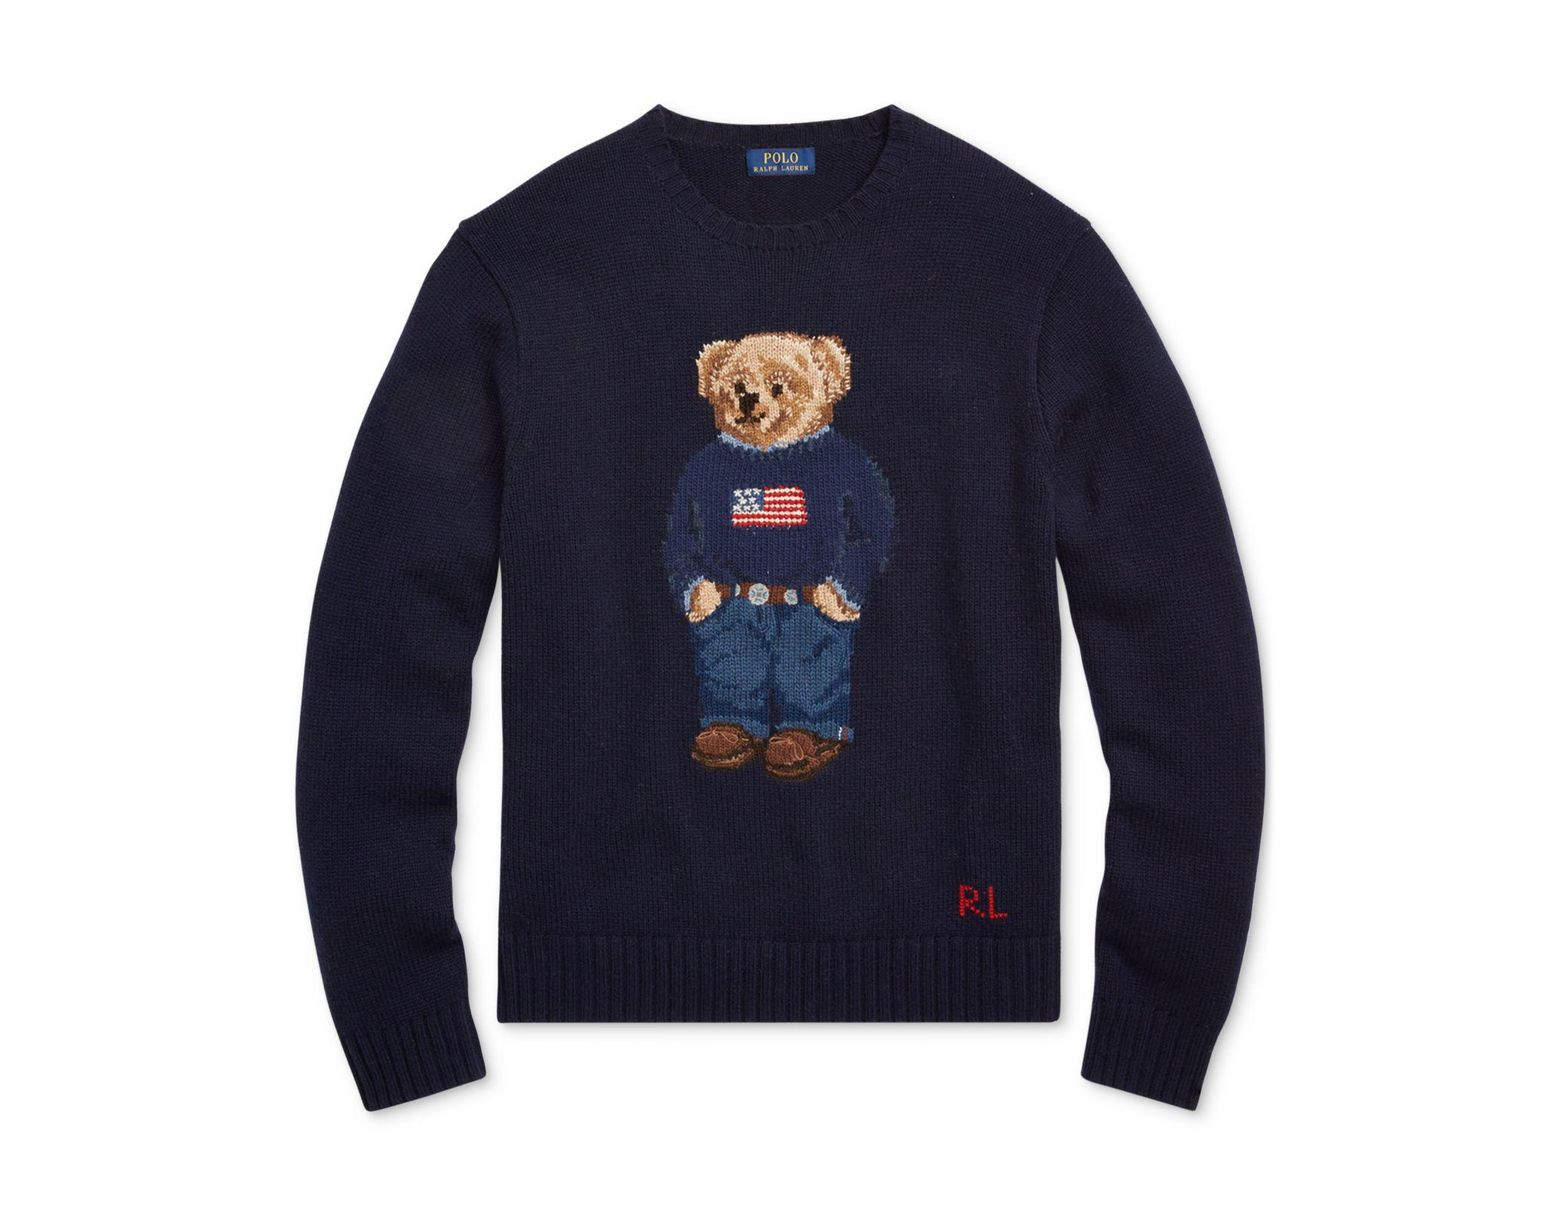 b075d5ee5 Polo Ralph Lauren Men s Iconic Polo Bear Sweater in Blue for Men - Save 40%  - Lyst